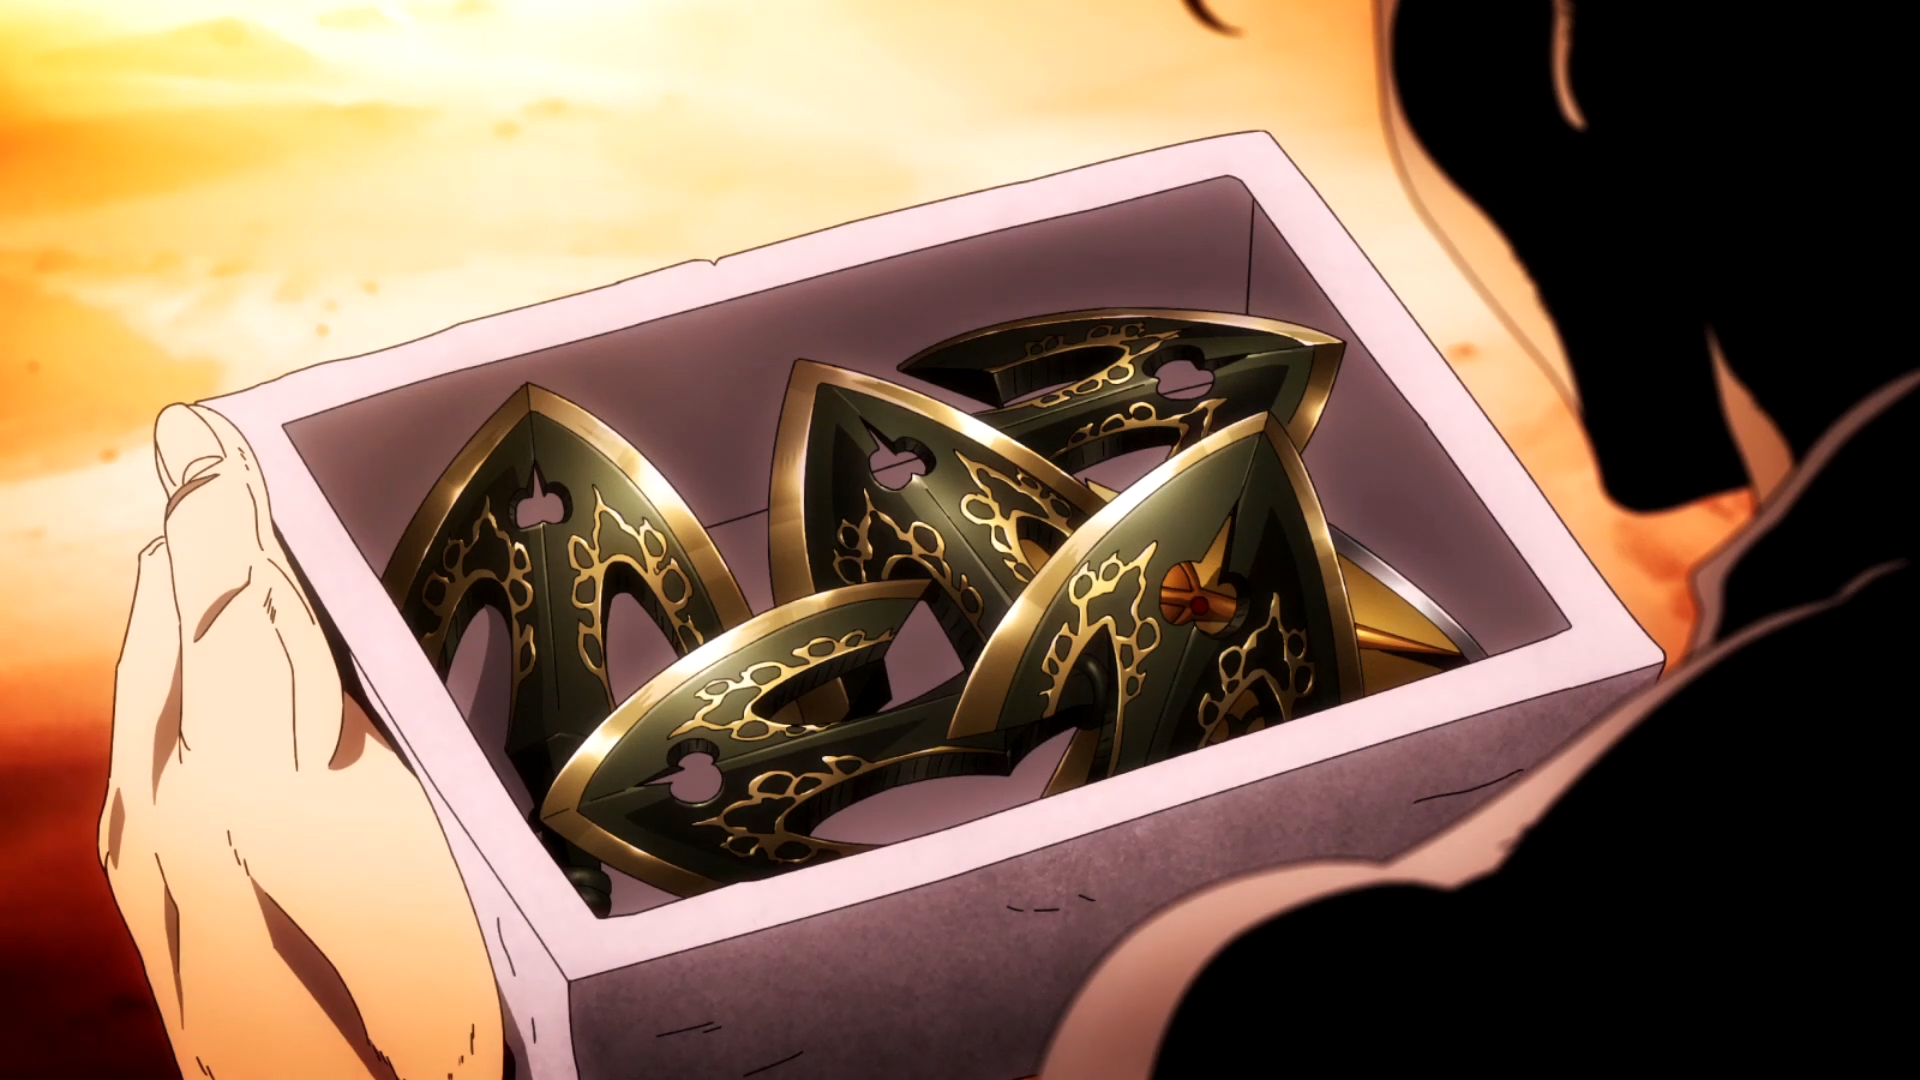 Bow And Arrow Jojo S Bizarre Wiki Fandom Well you're in luck, because here they come. bow and arrow jojo s bizarre wiki